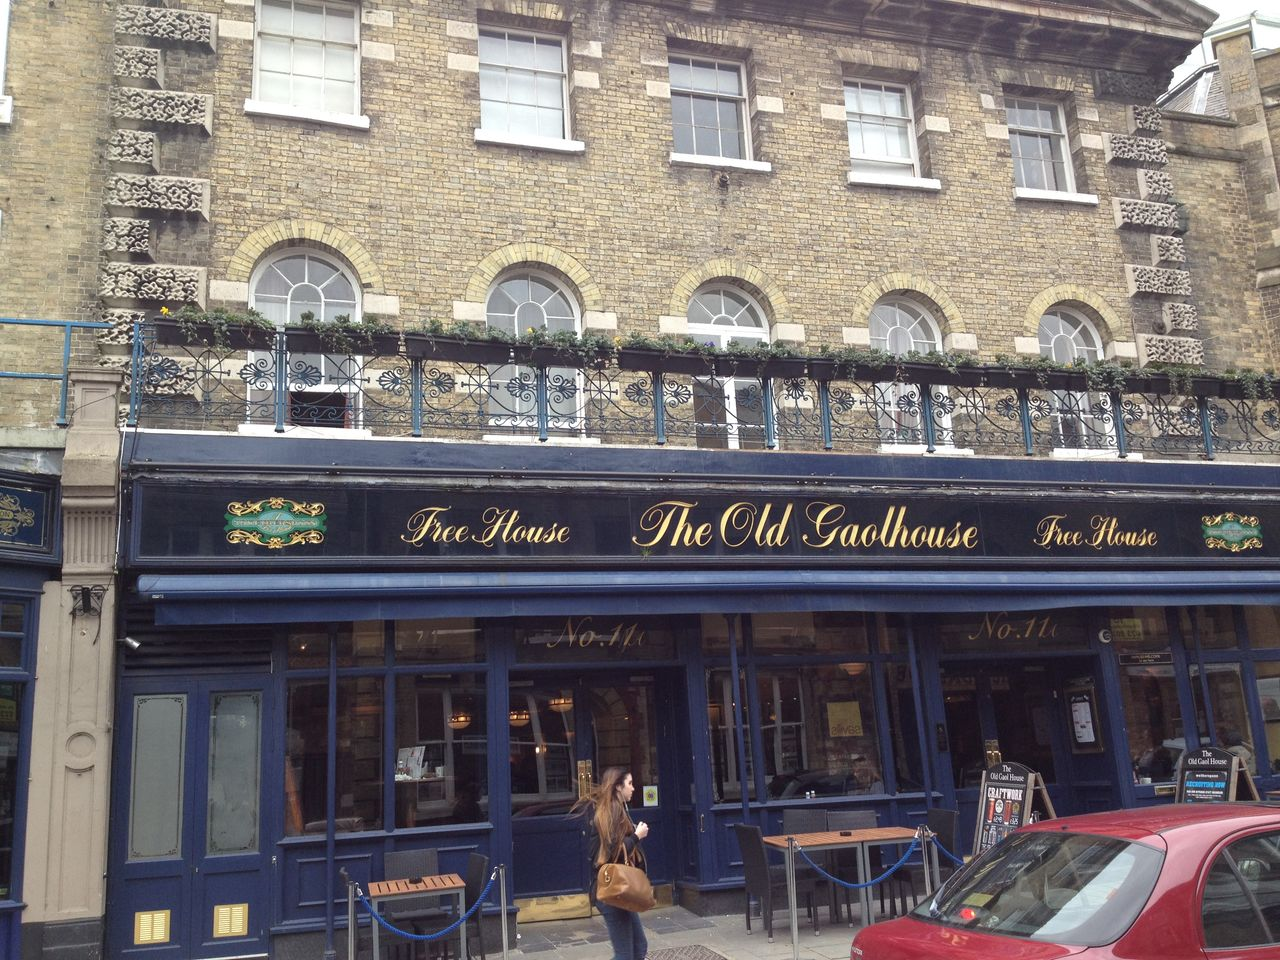 The balcony on the top of a pub adorned with the cast ironwork.